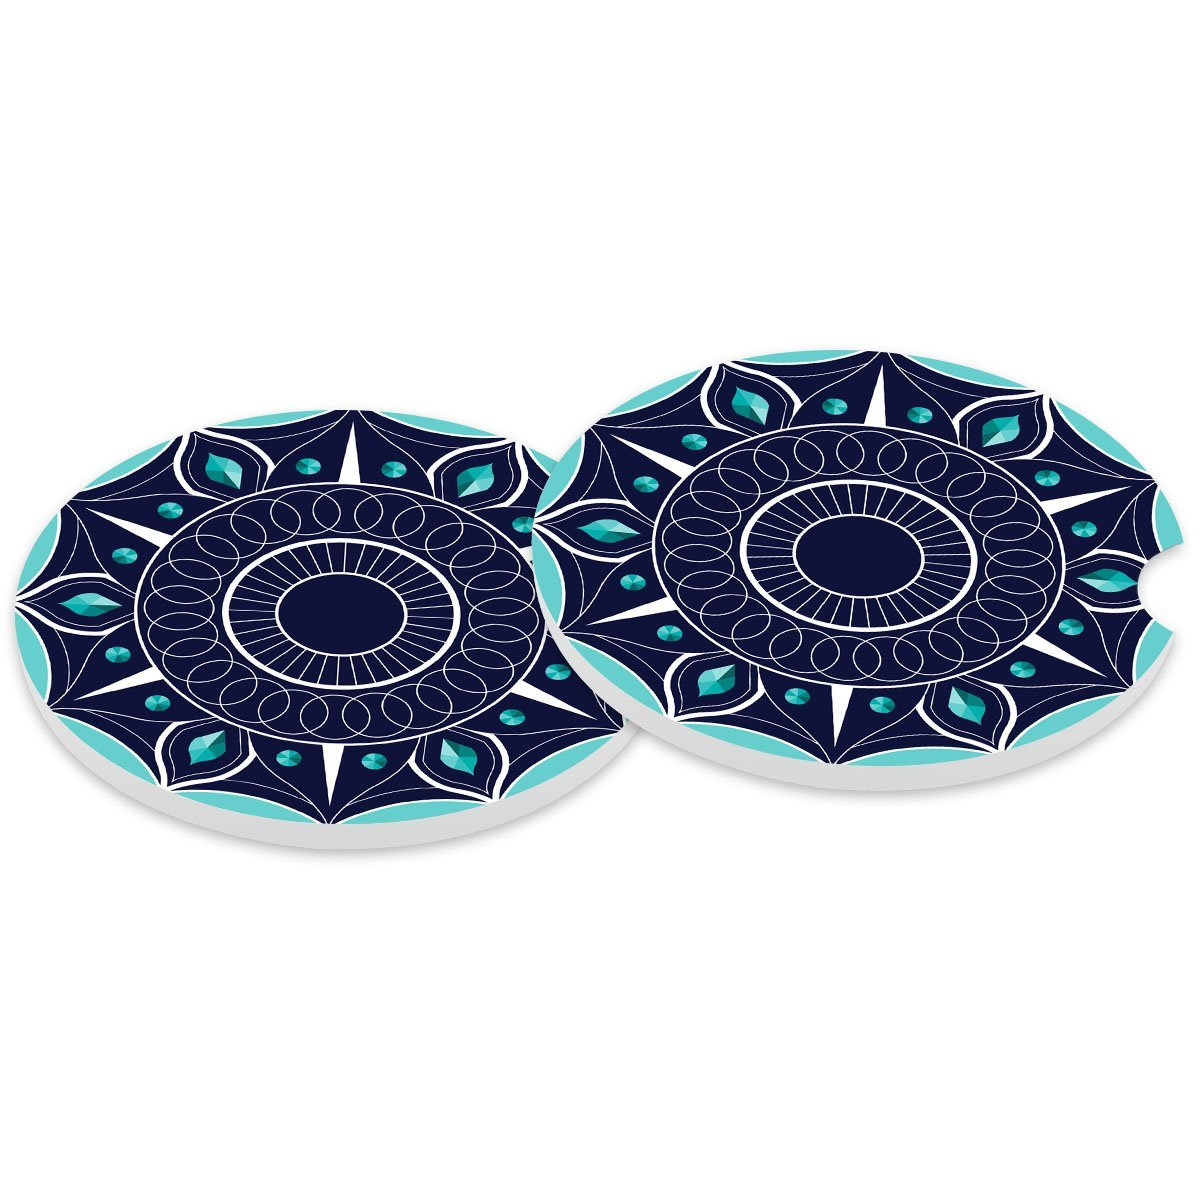 Absorbent Stoneware Car Coaster, Ceramic Auto Cupholder Coasters, Set of 2 Stone Coasters for Drinks Absorbent Getfitsoo